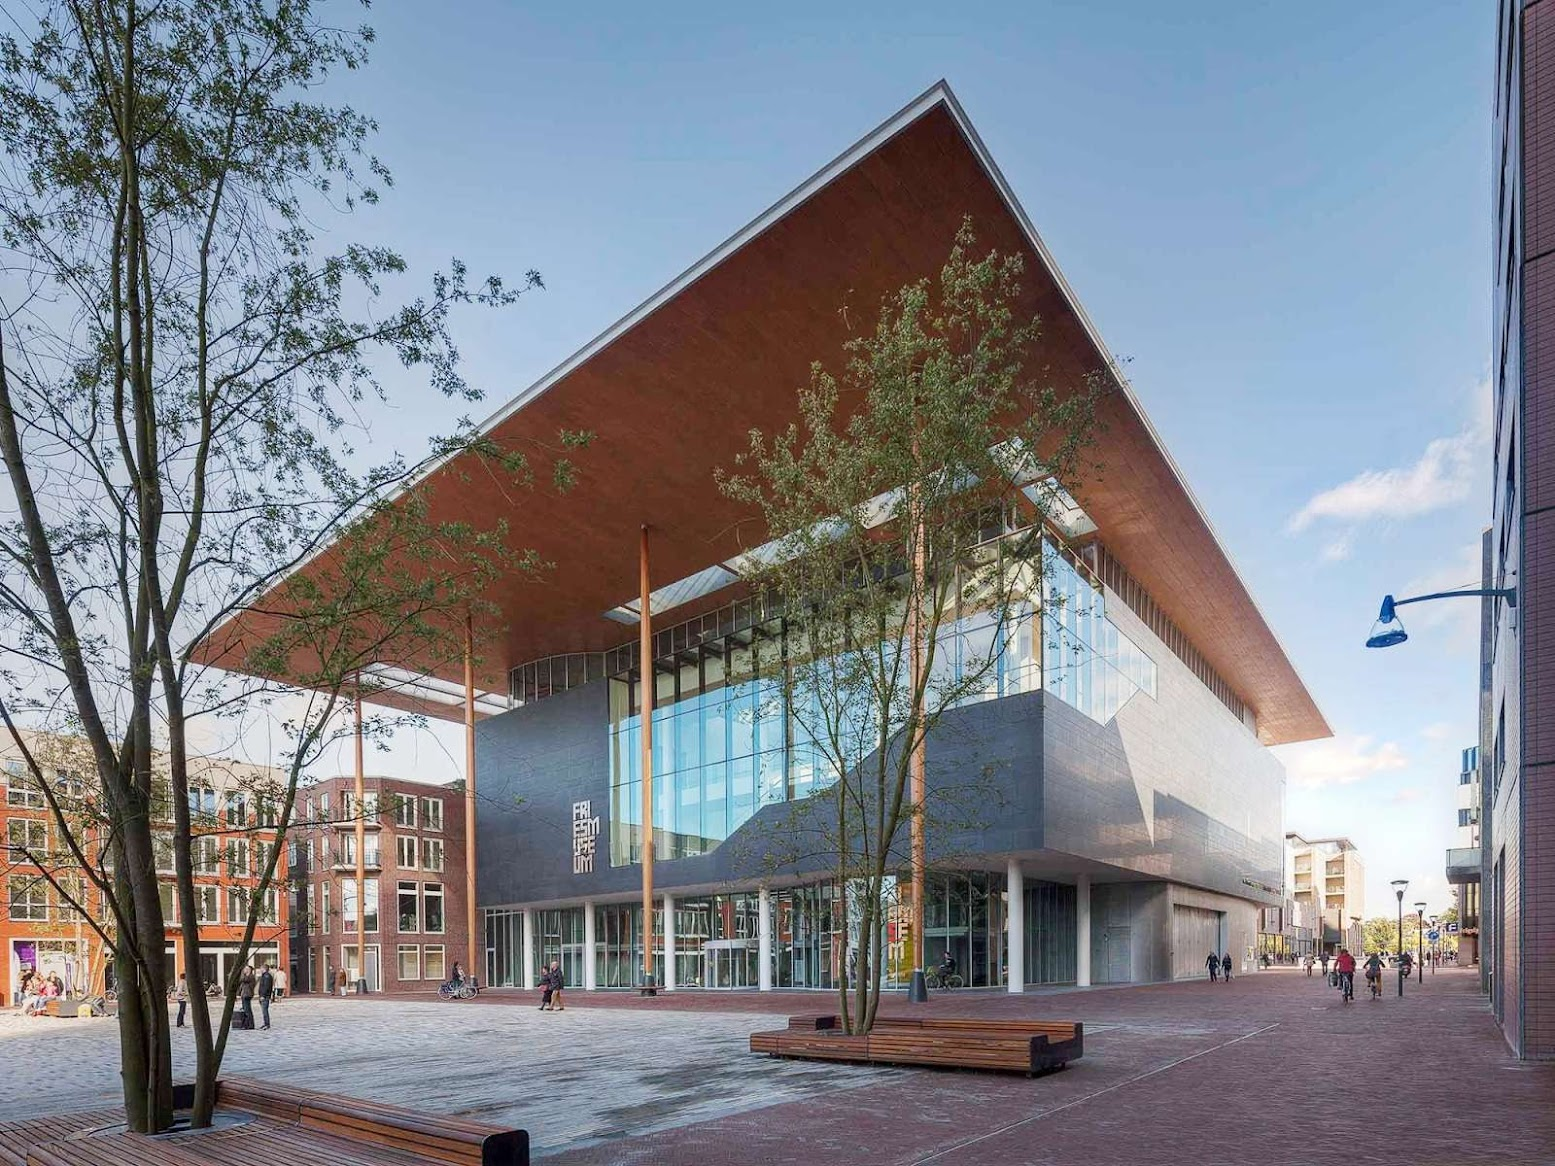 Leeuwarden, Paesi Bassi: [FRIES MUSEUM BY BIERMAN HENKET ARCHITECTEN]